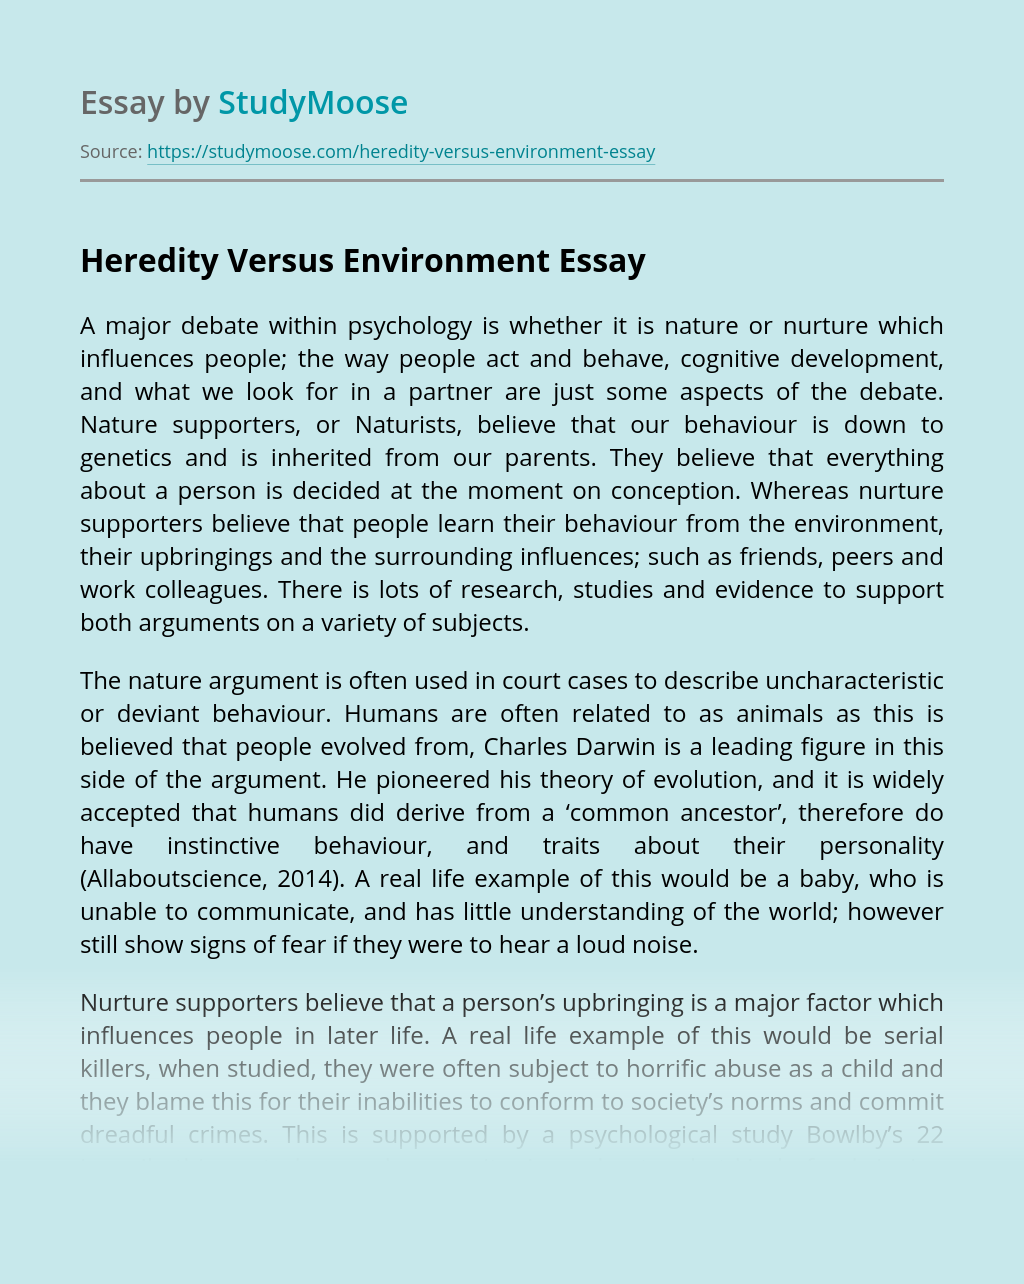 Heredity Versus Environment